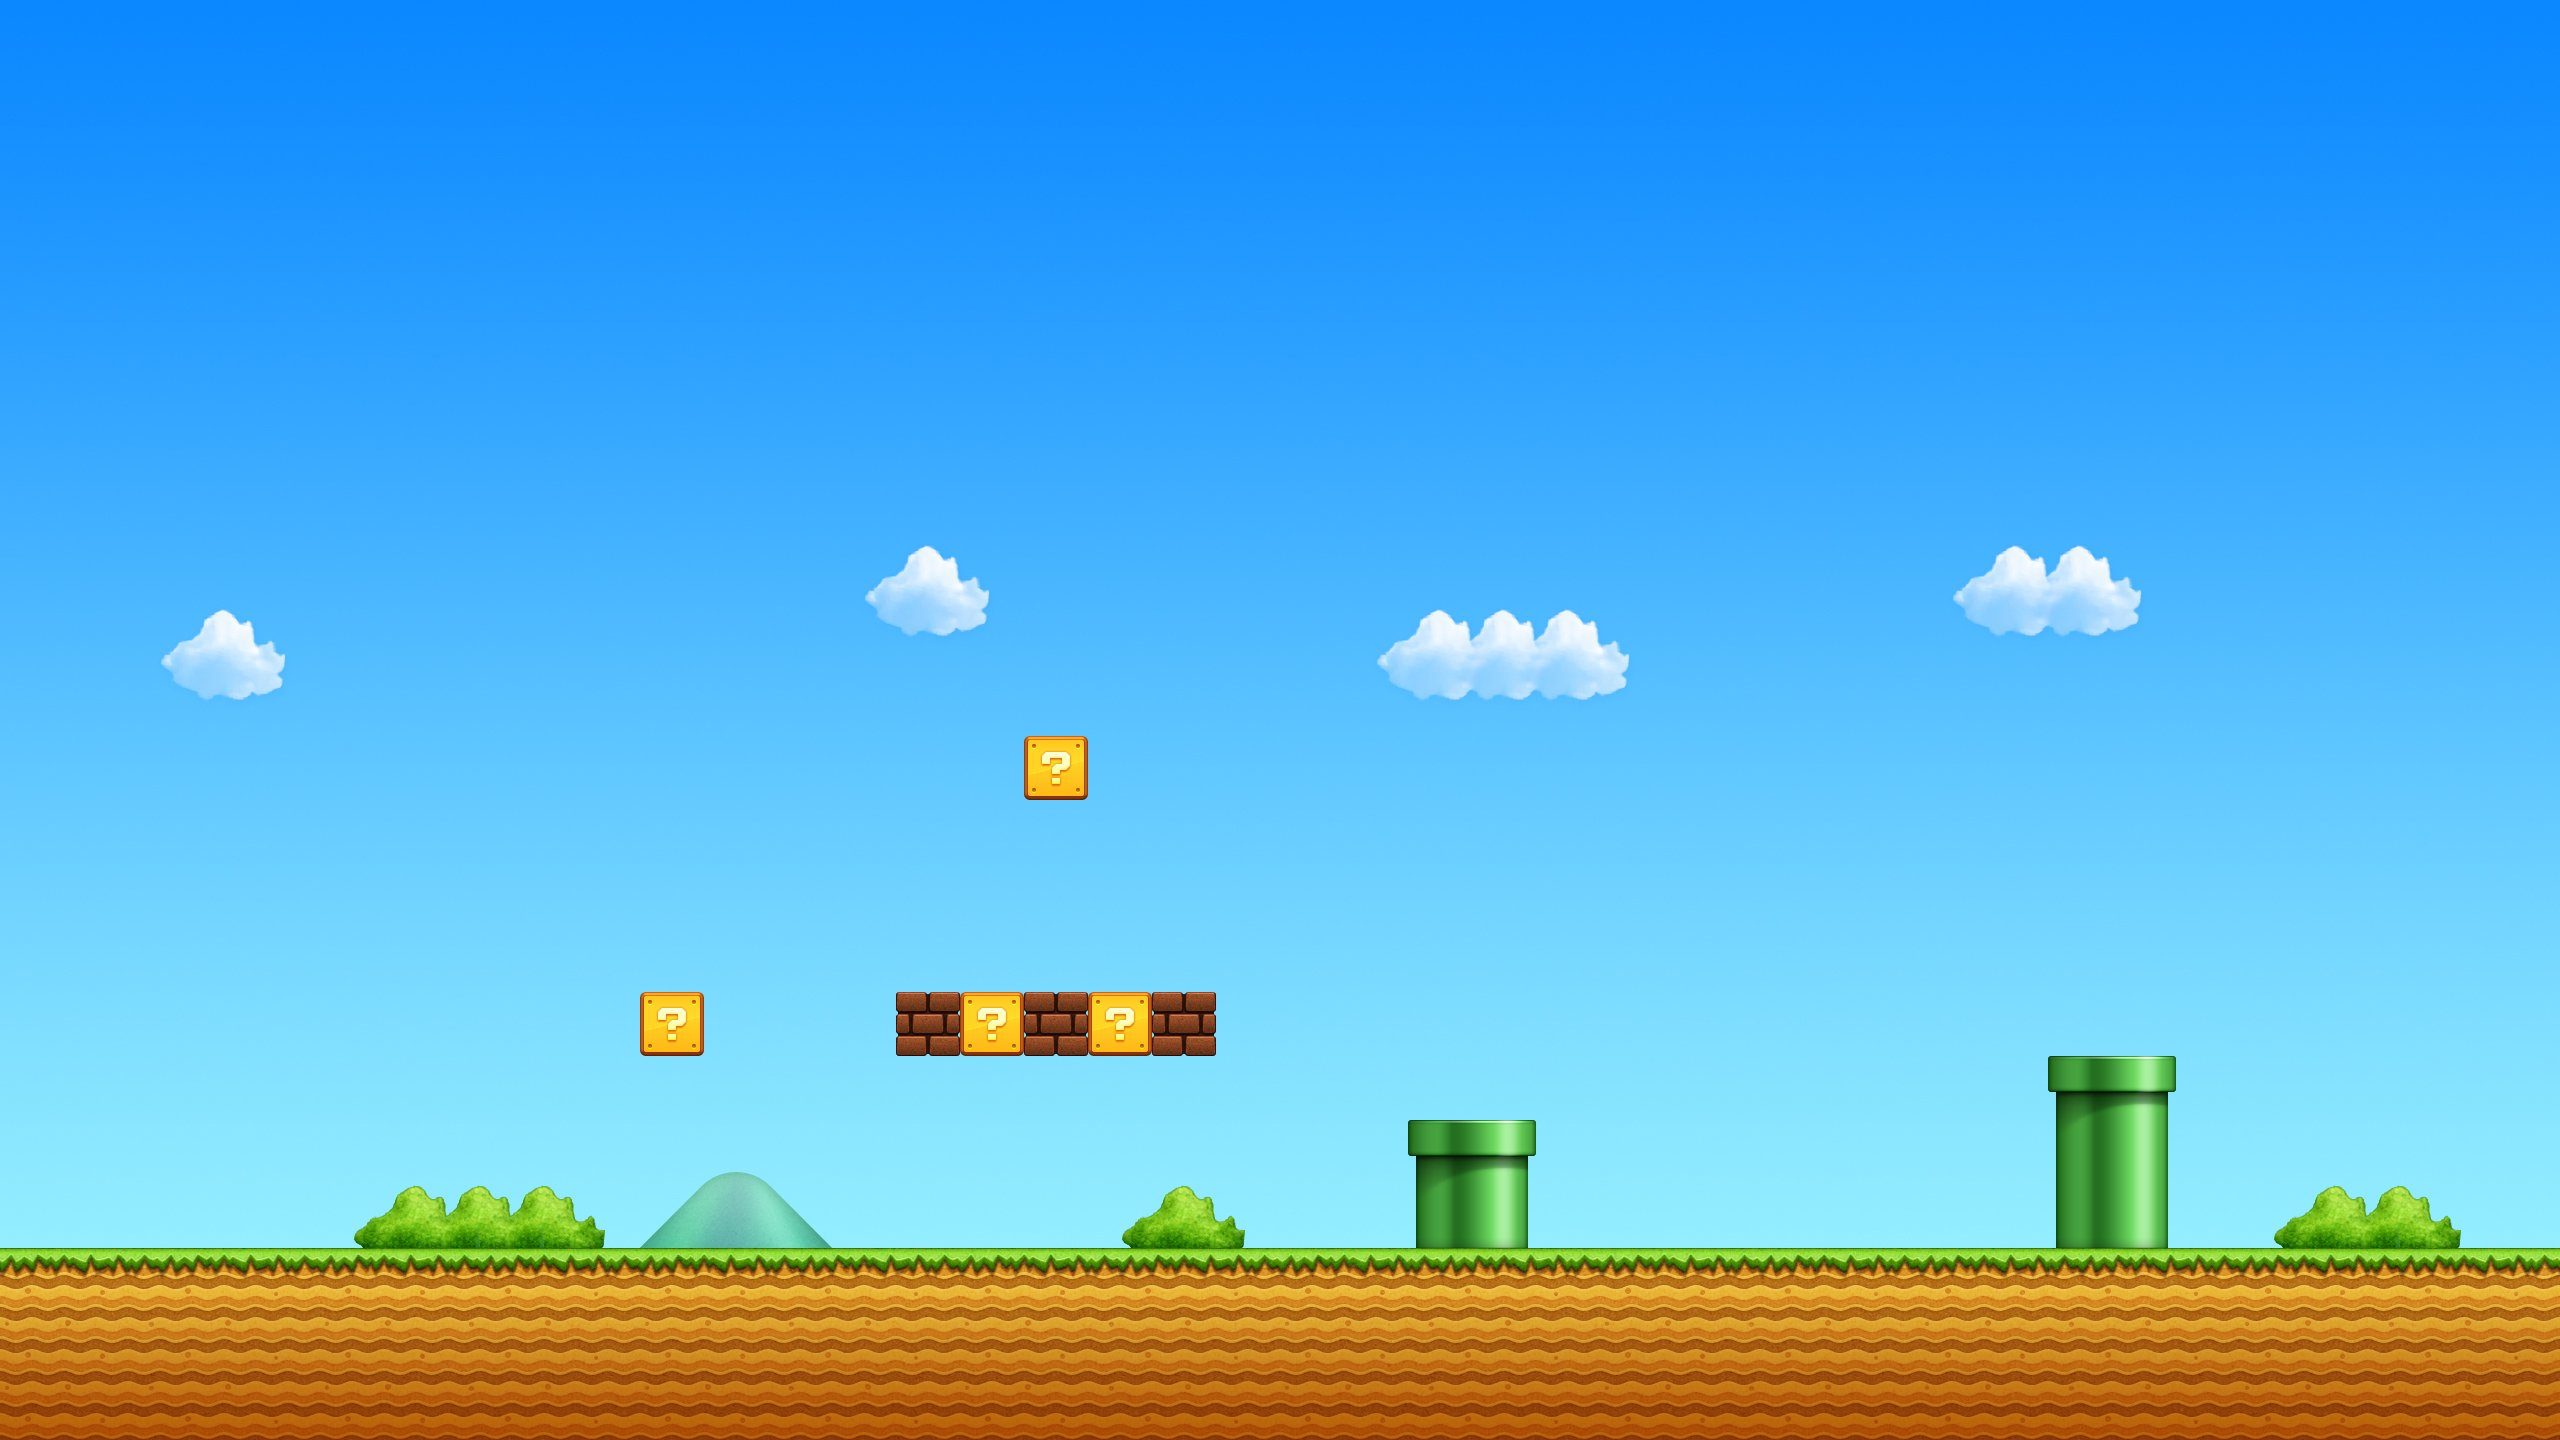 Super Mario Bros HD Wallpaper Background Image 2560x1440 ID 2560x1440